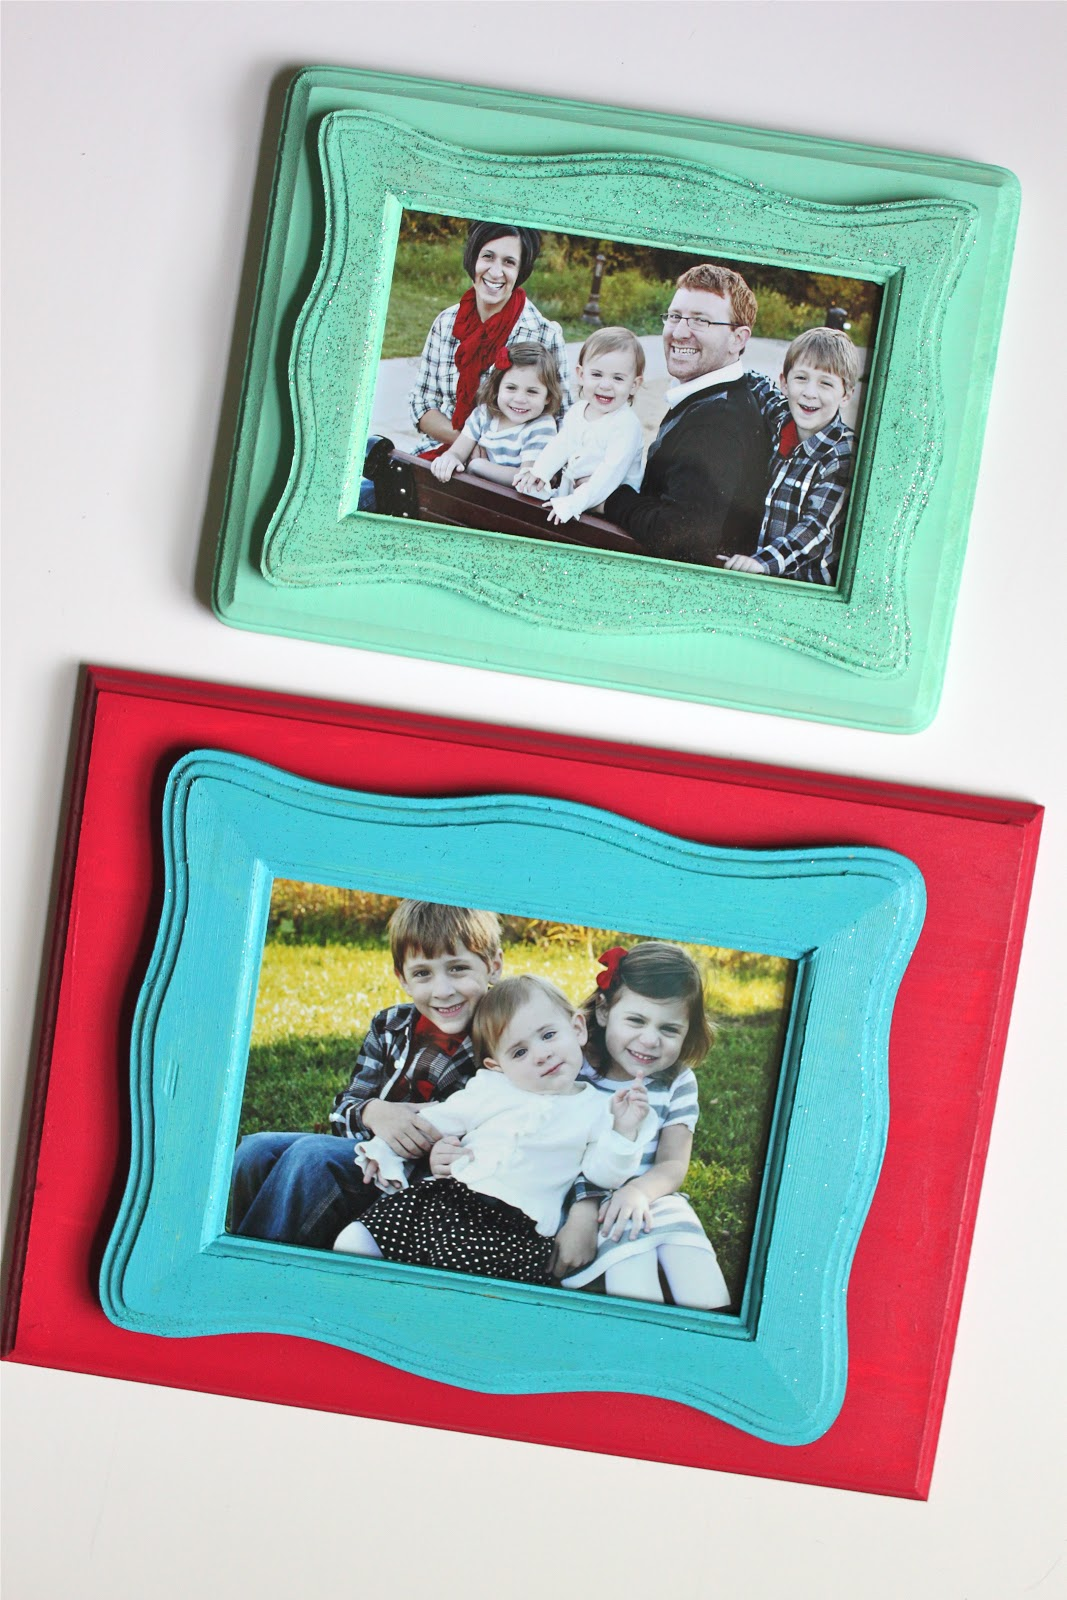 Unfinished wood picture frames craft - You Can Find All Of The Products And Project Ideas At Joanns Com Now And In Your Local Jo Ann Fabric And Craft Stores As Well As Michaels Stores Starting